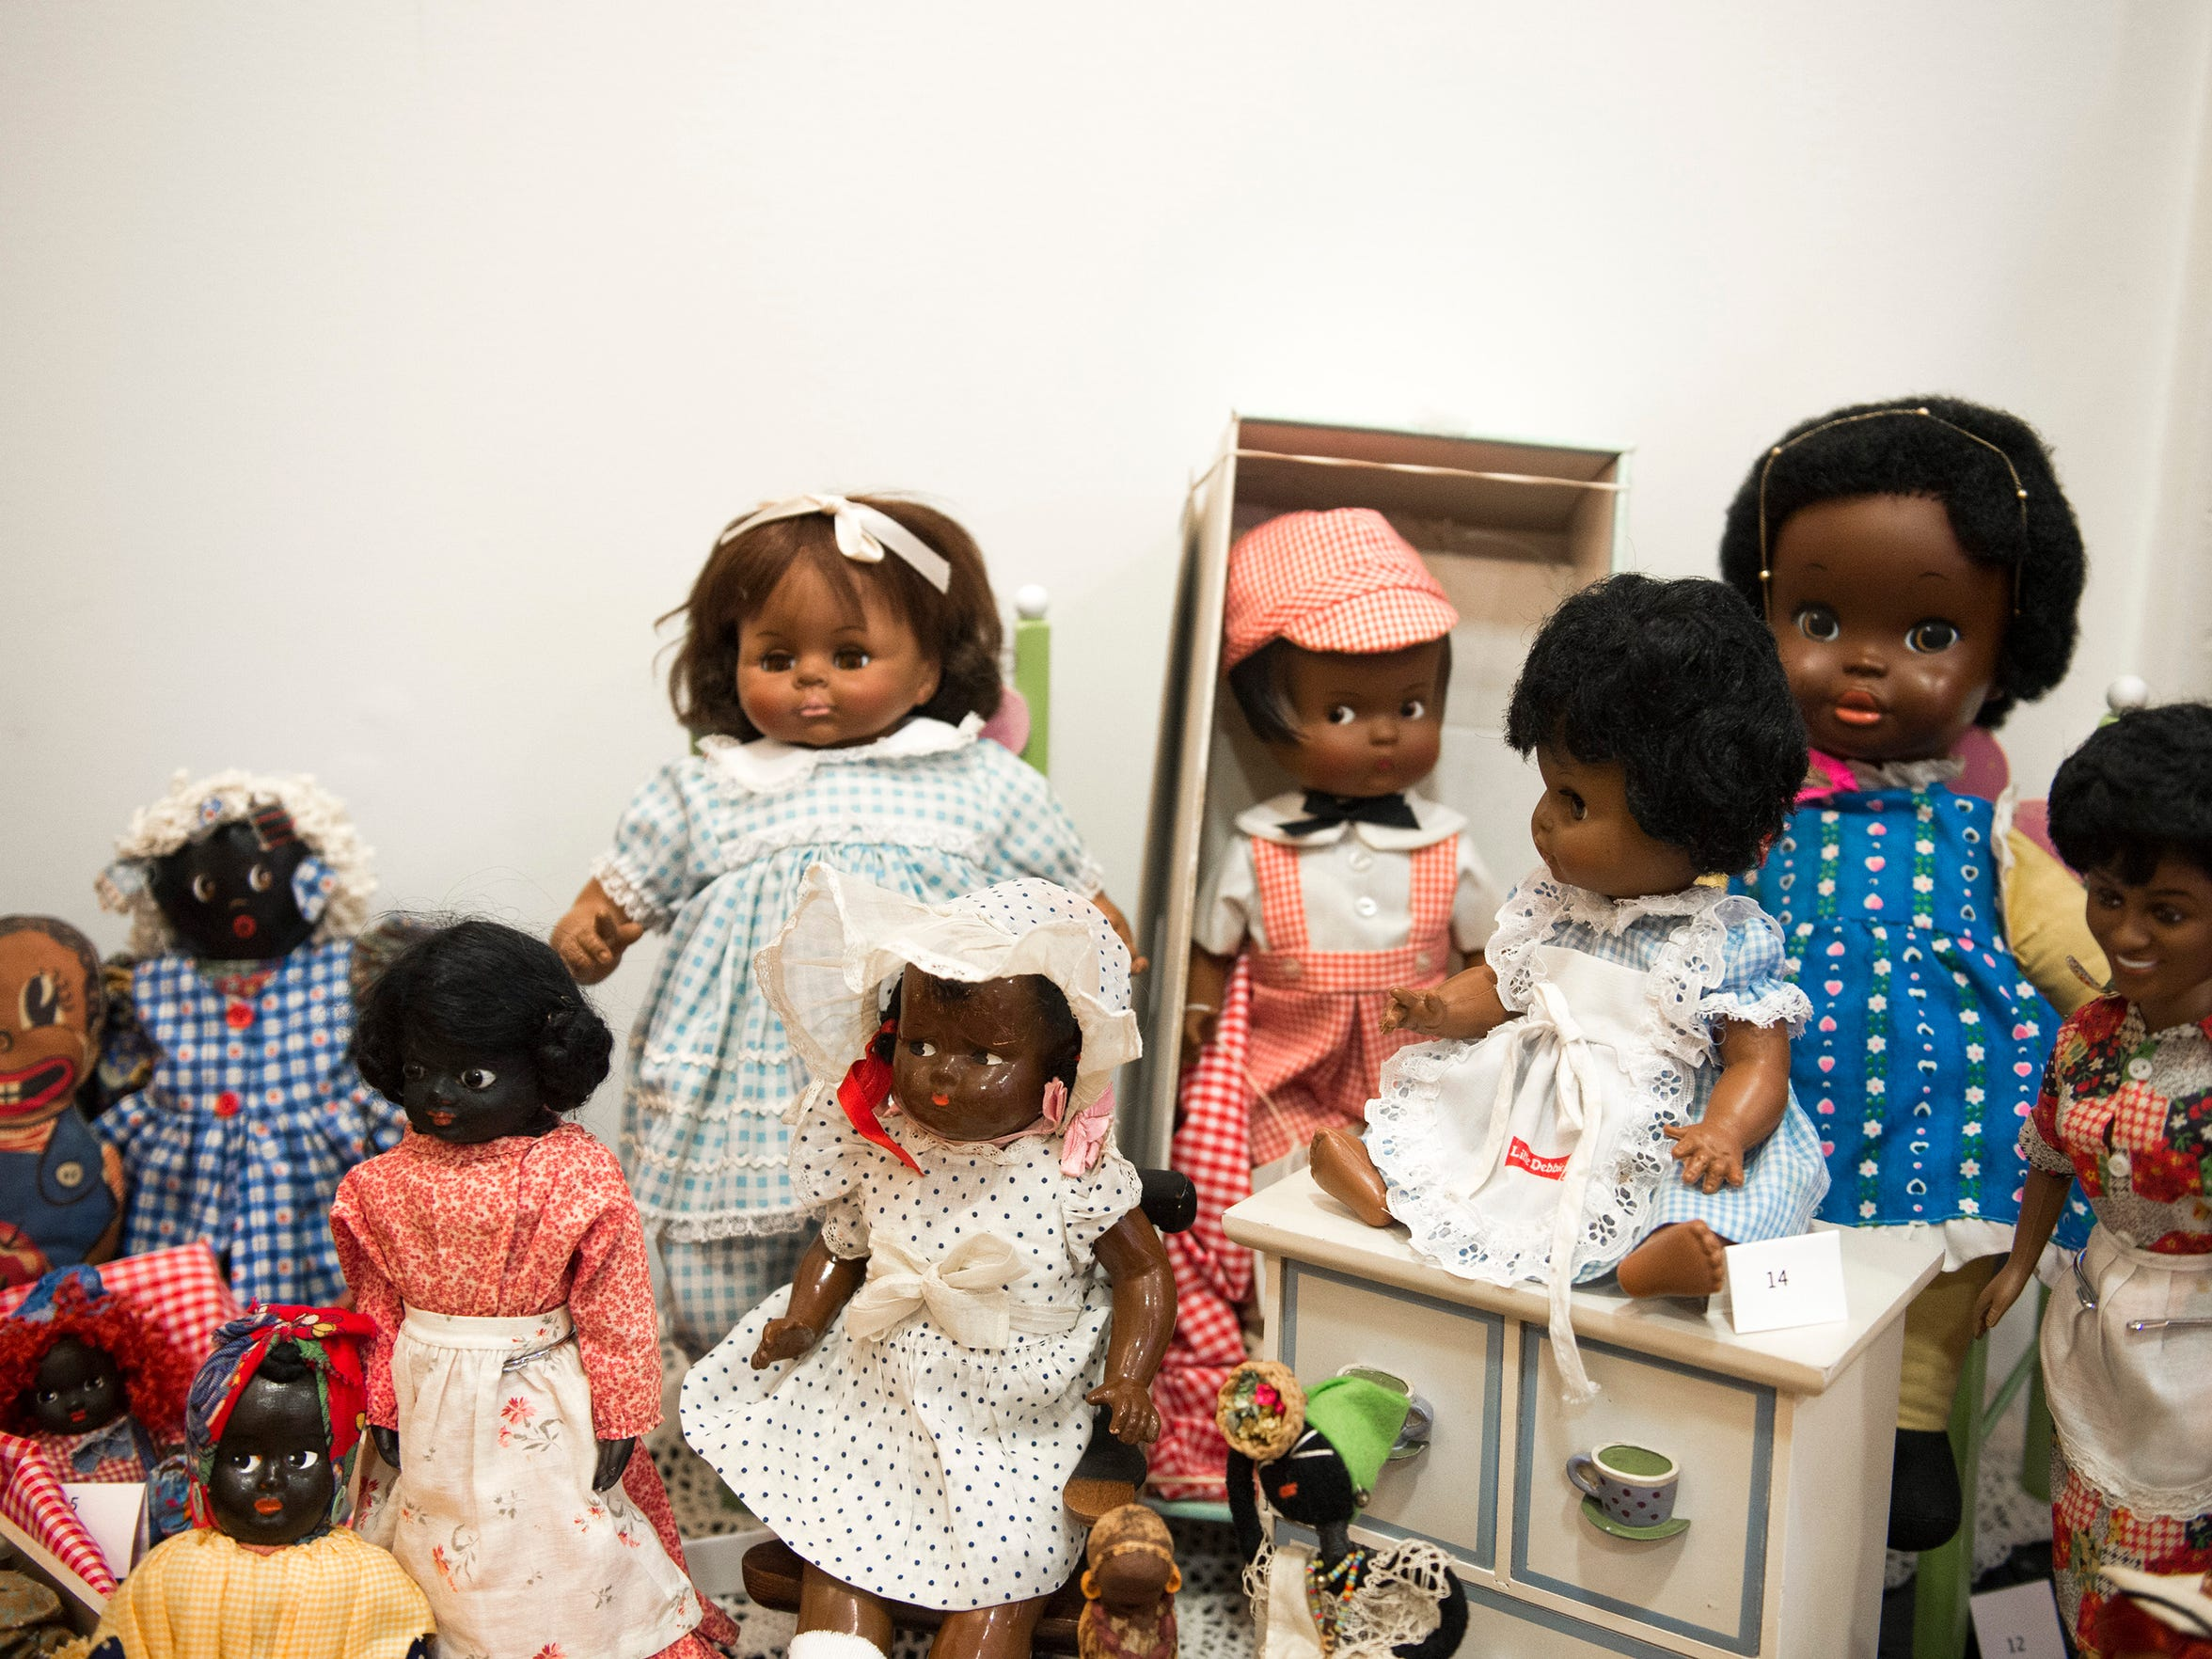 Dolls on display inside the Dolls of Distinction Exhibition at the Smithville Mansion in Eastampton.